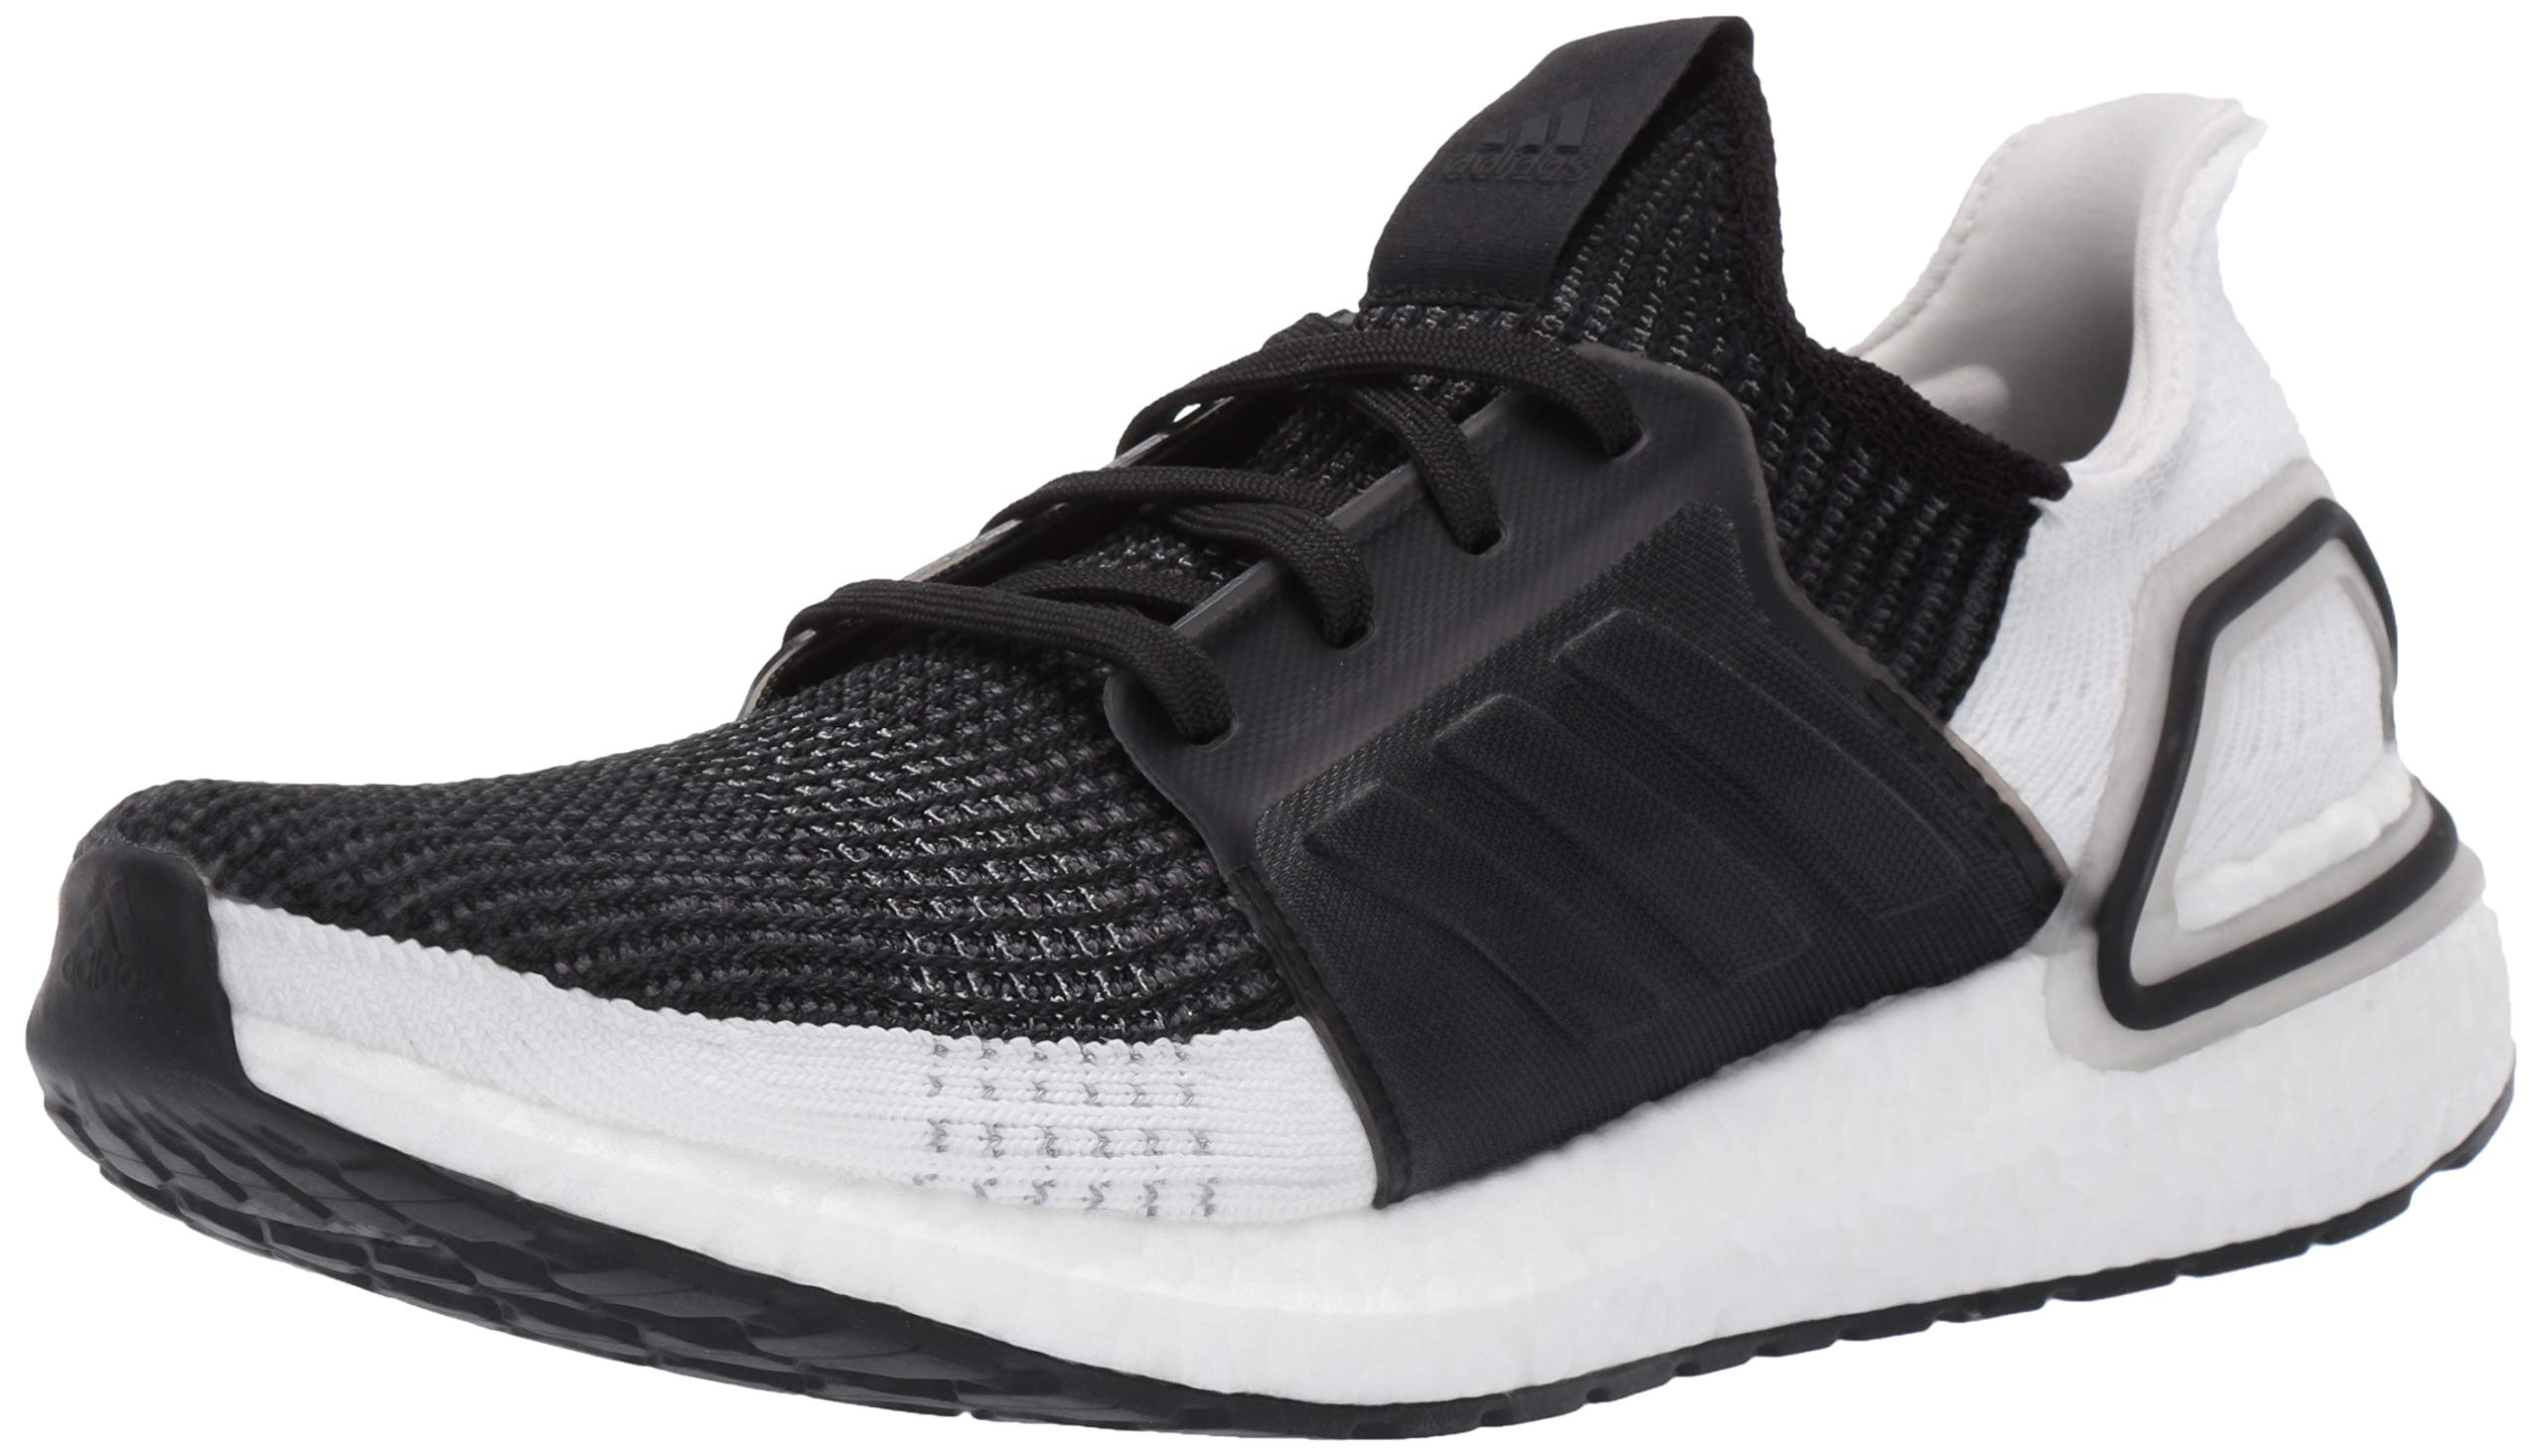 adidas Men's Ultraboost 19, Black Grey, 9.5 M US by adidas